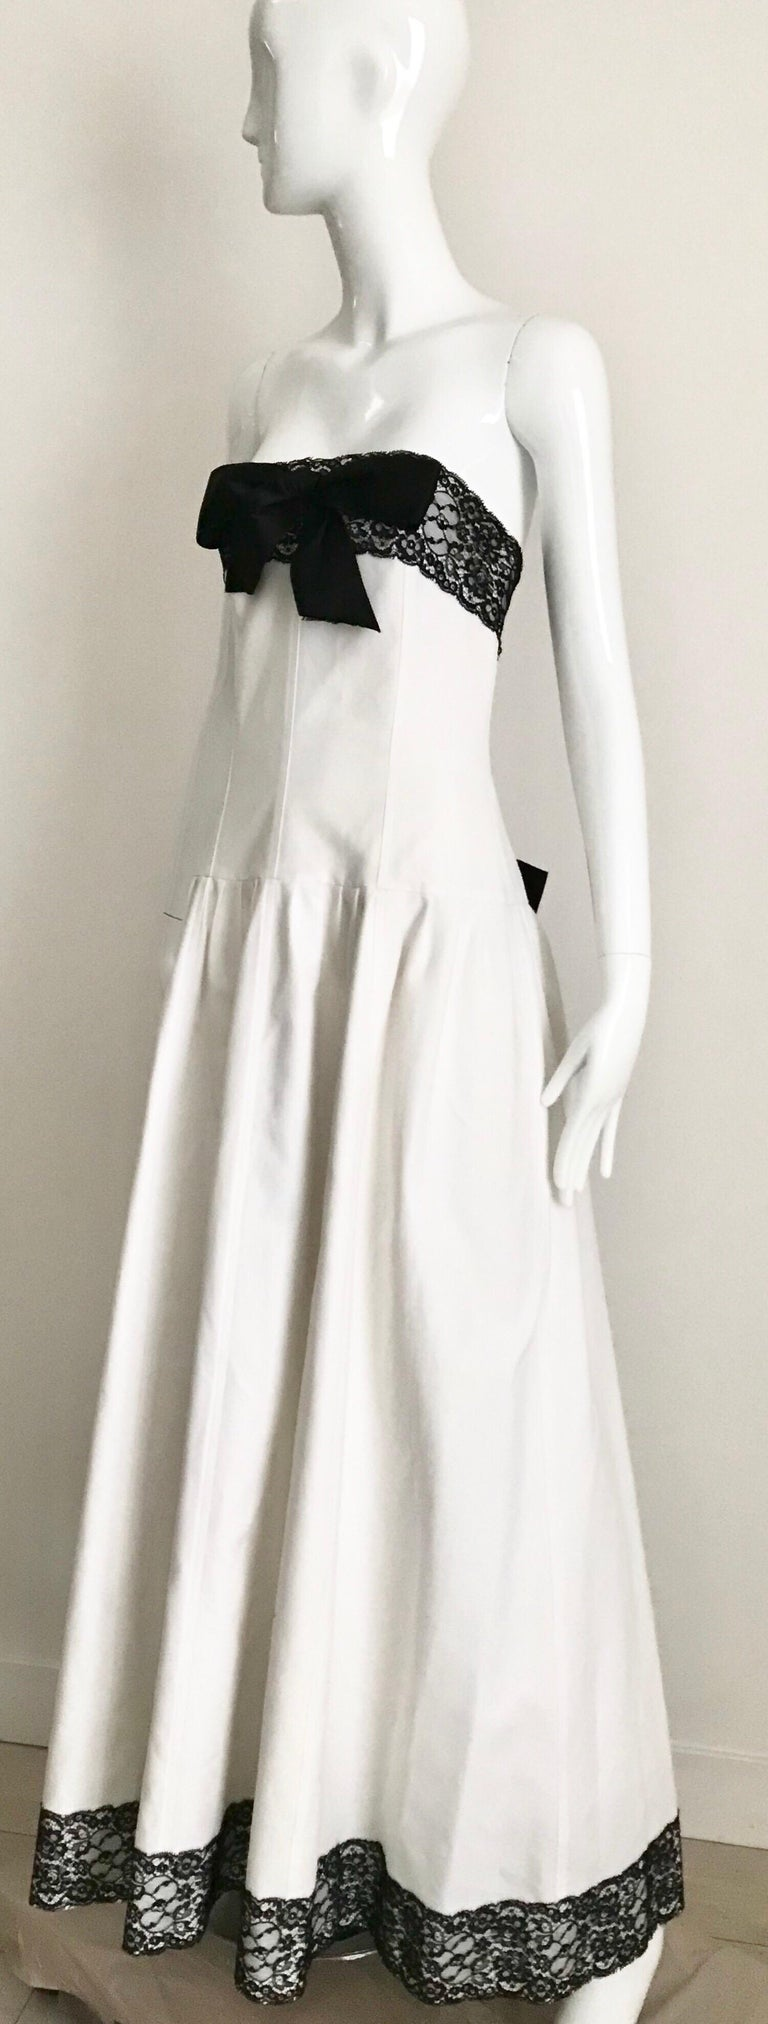 Timeless Vintage Chanel white cotton piquè strapless gown with black lace ribbon trimming. Slightly drop waist. Corset underneath. Fit: XS/SM (2-4) Bust:32 inches/ Waist: 25 inches *This garment  has been professionally dry cleaned